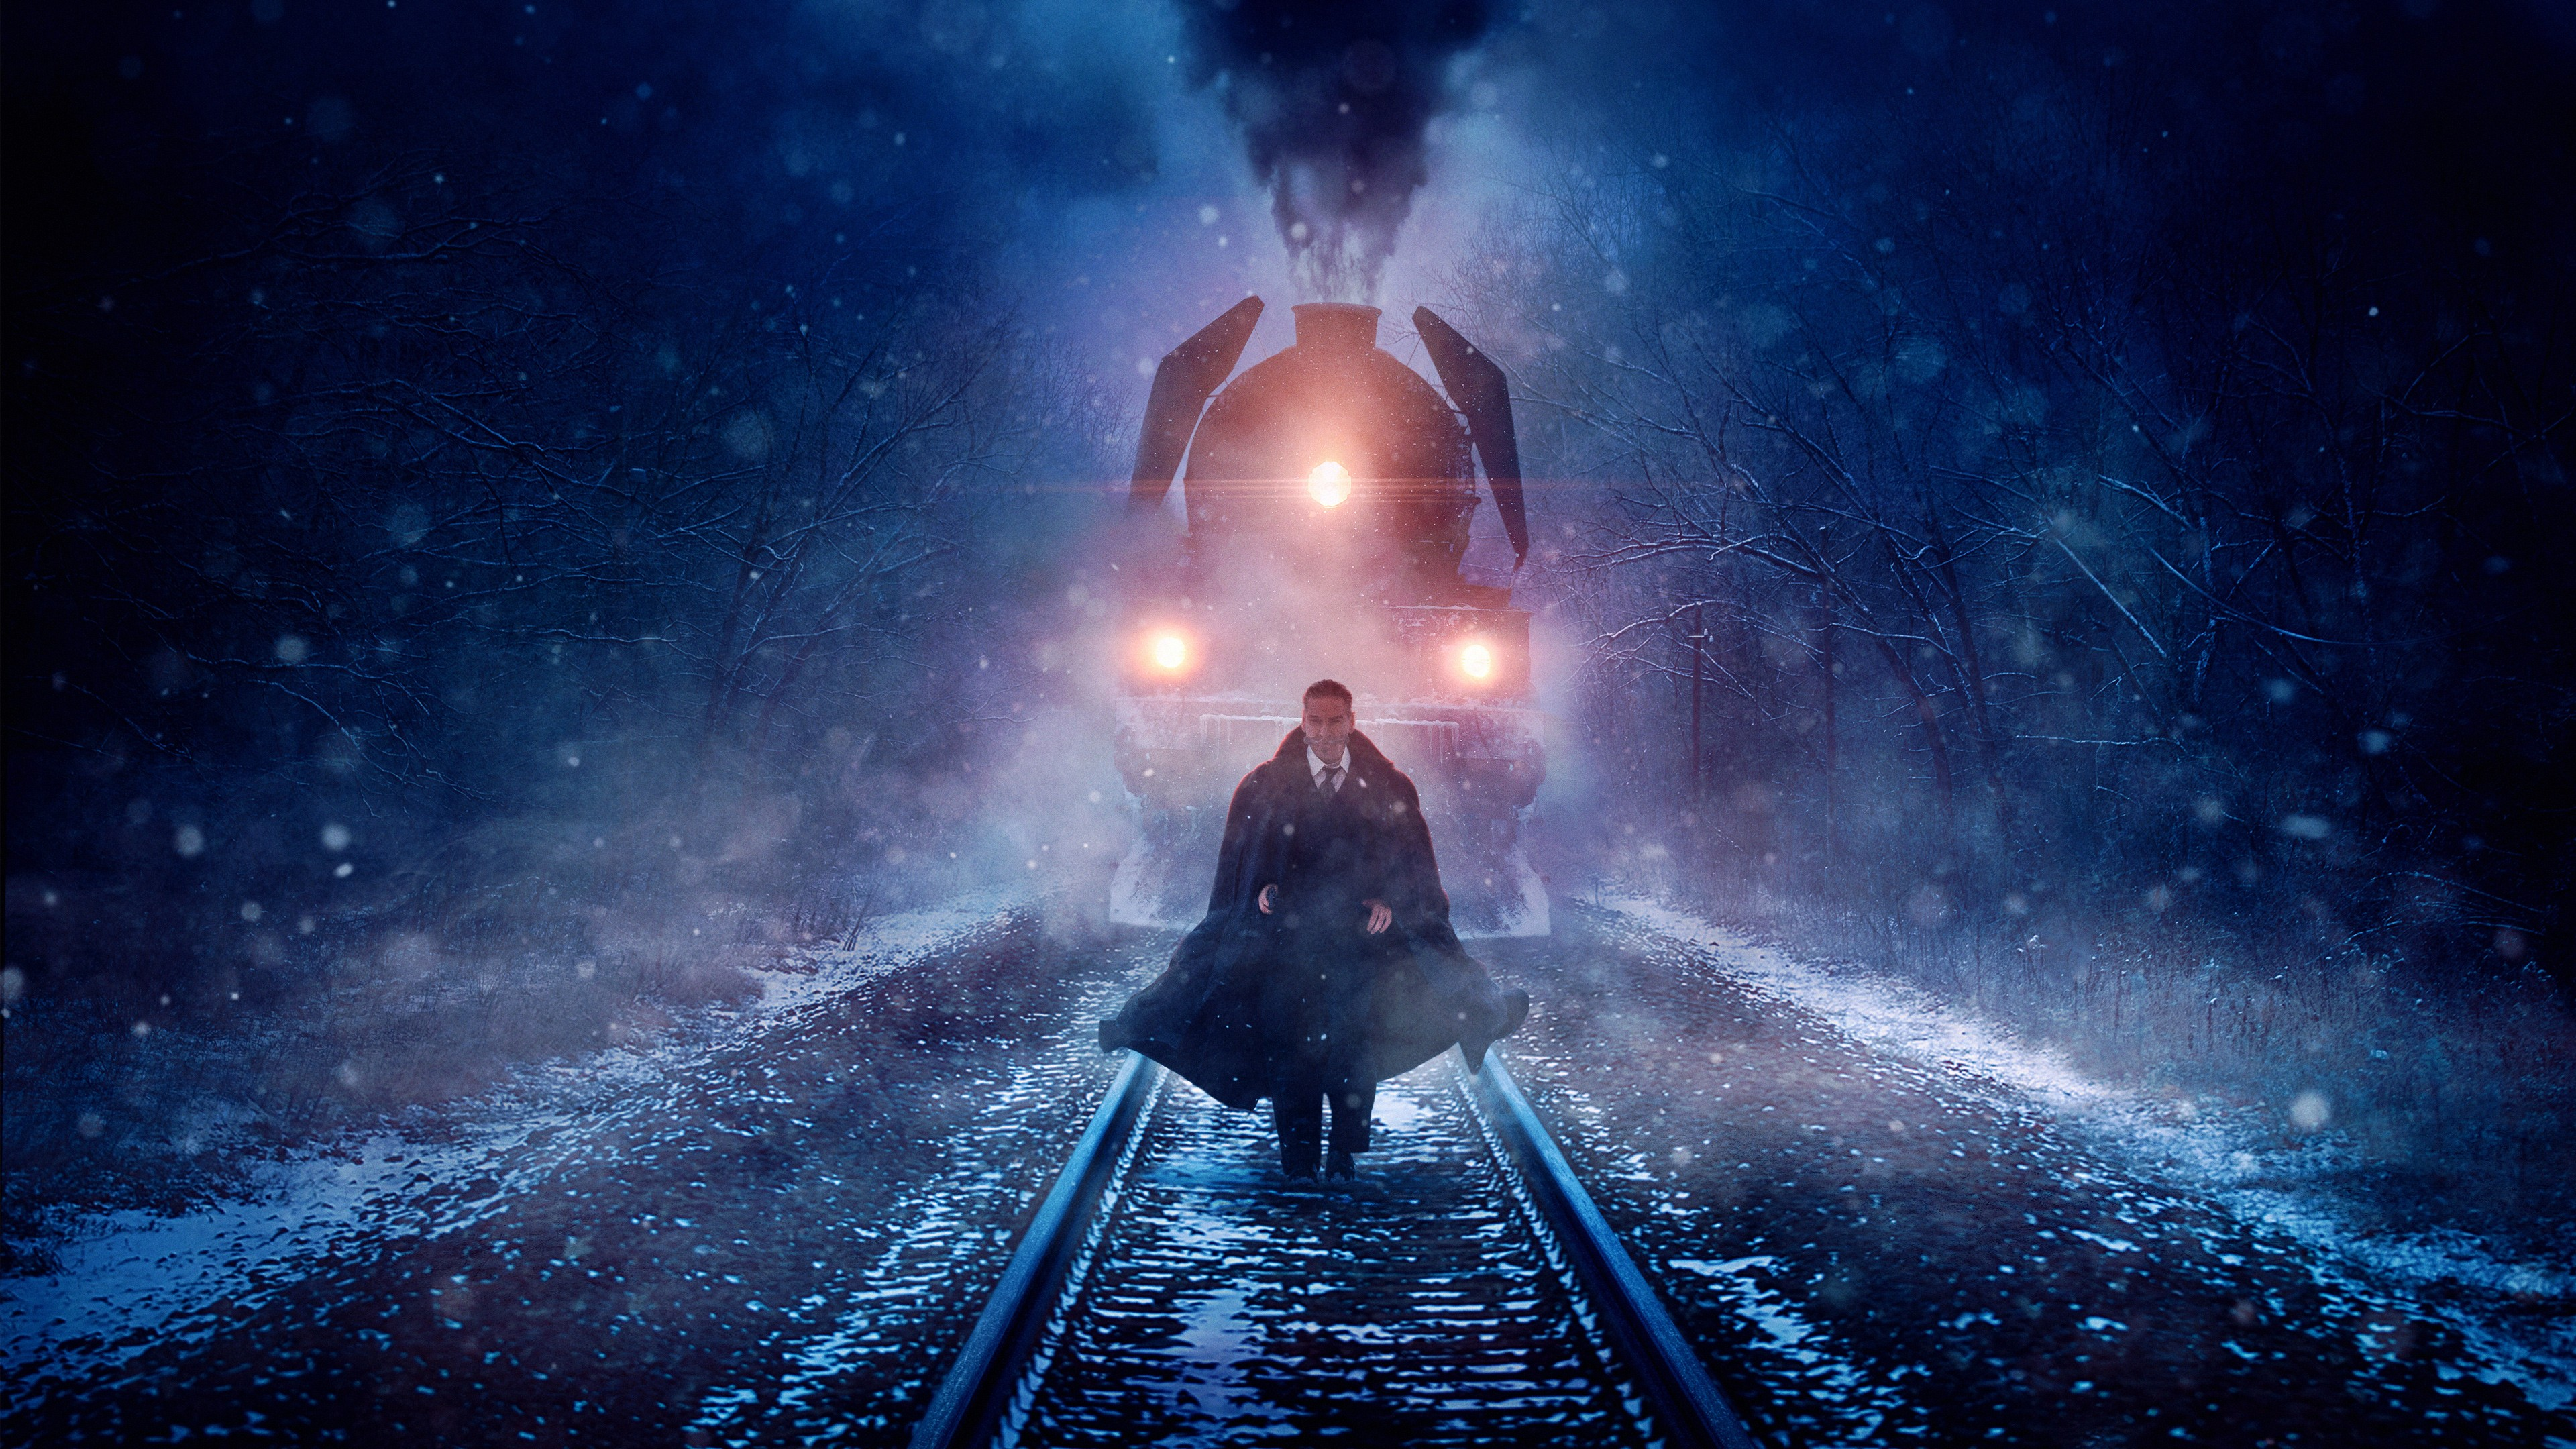 murder_on_the_orient_express_2017_4k-3840x2160